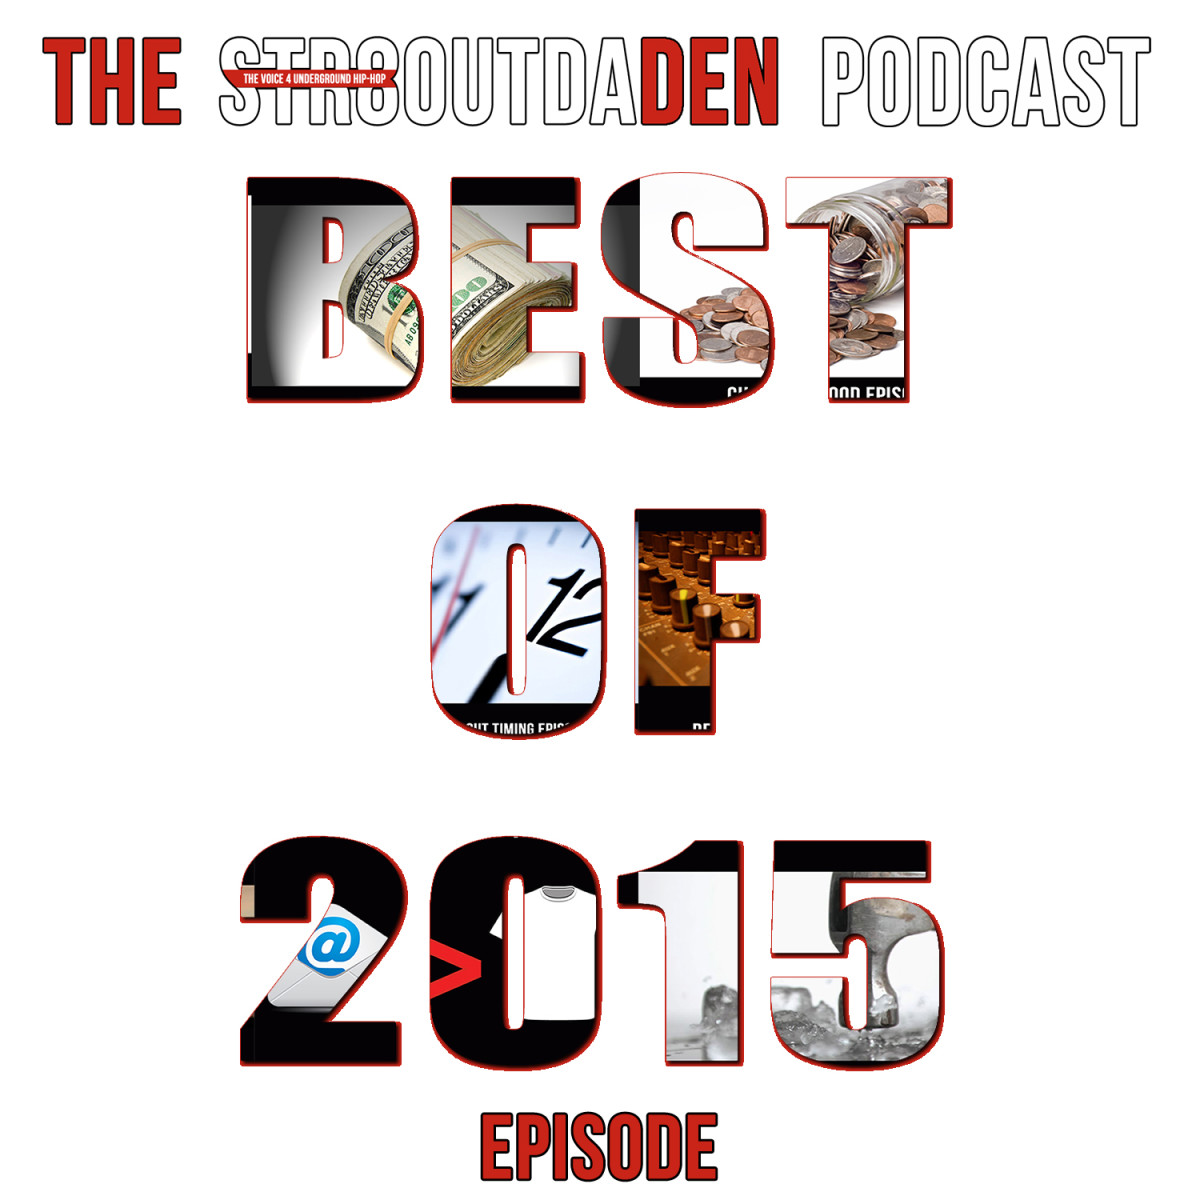 BEST OF 2015 EPISODE 2